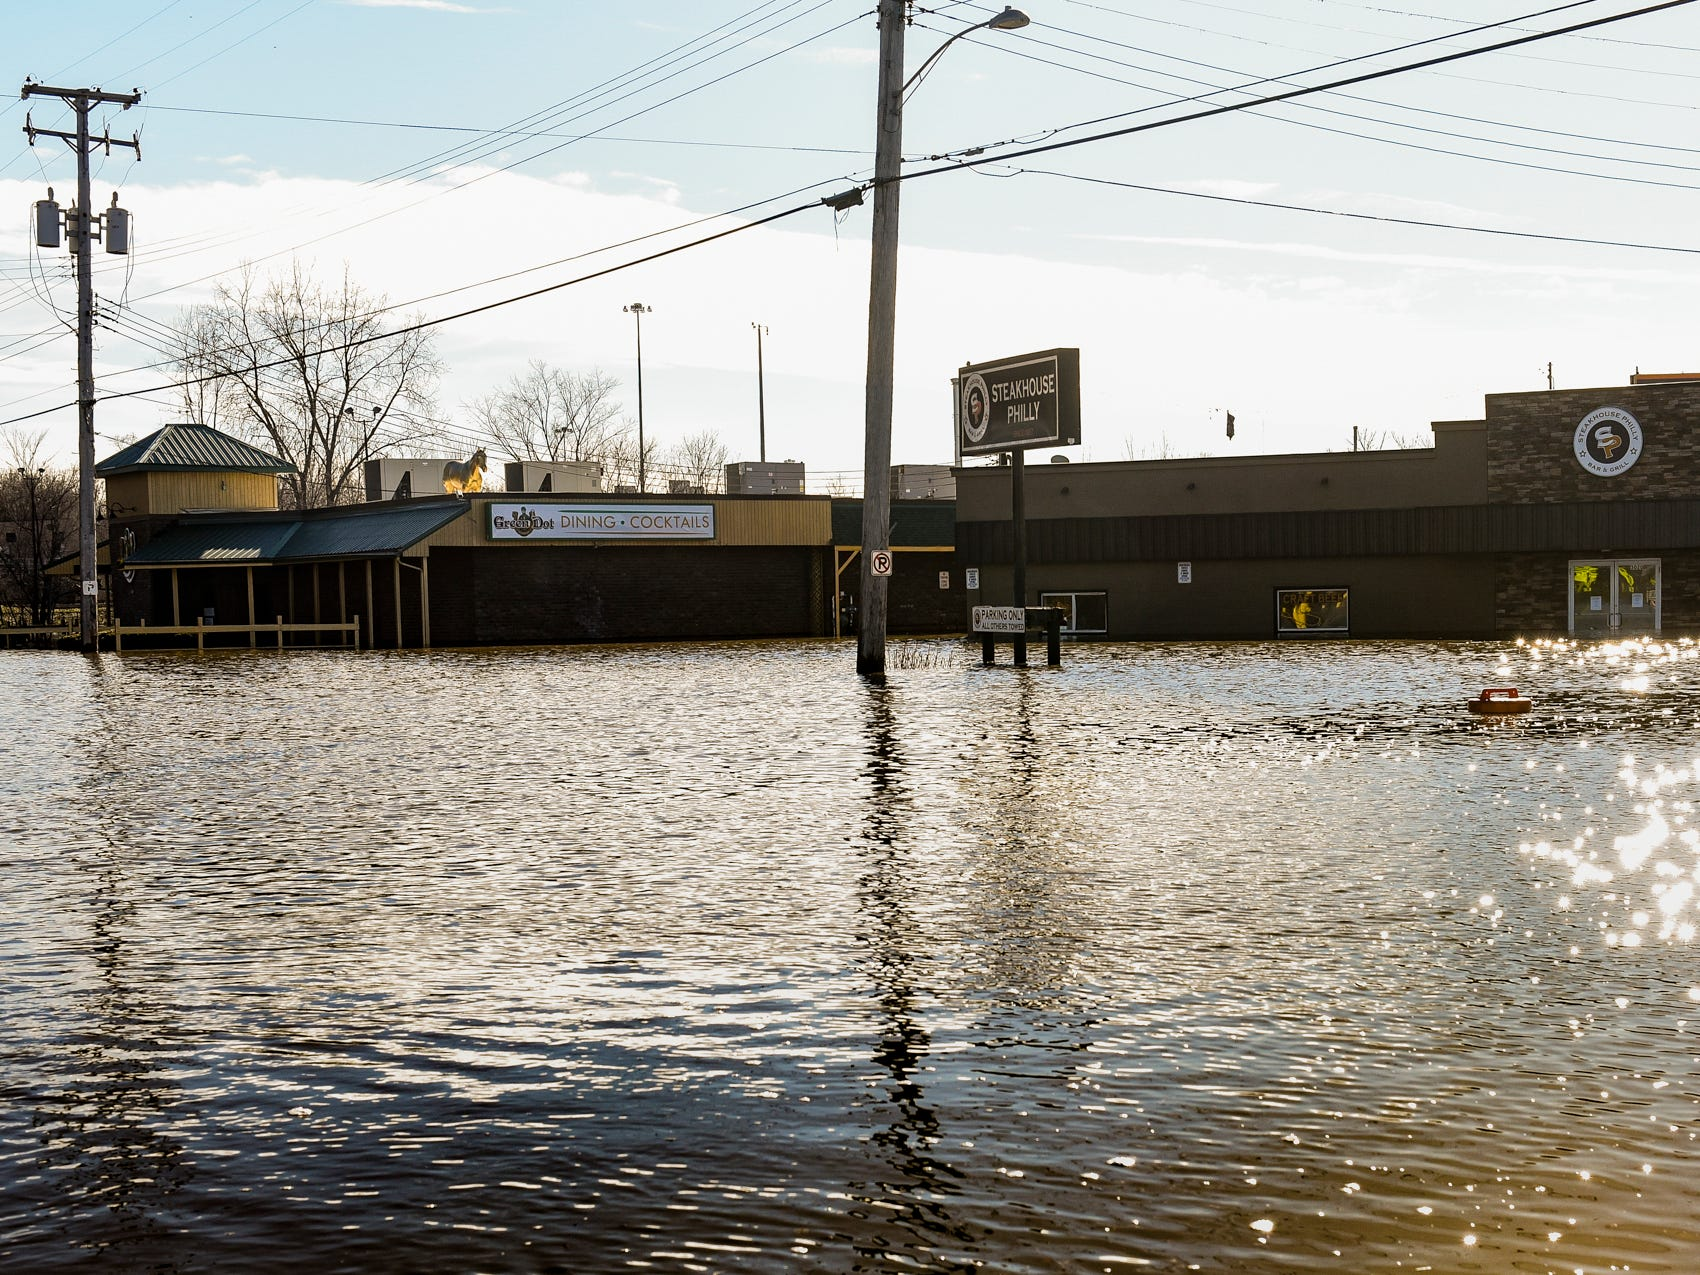 The Green Dot and Steakhouse Philly near Frandor Shopping Center are under water due to flooding Thursday, Feb. 22, 2018.